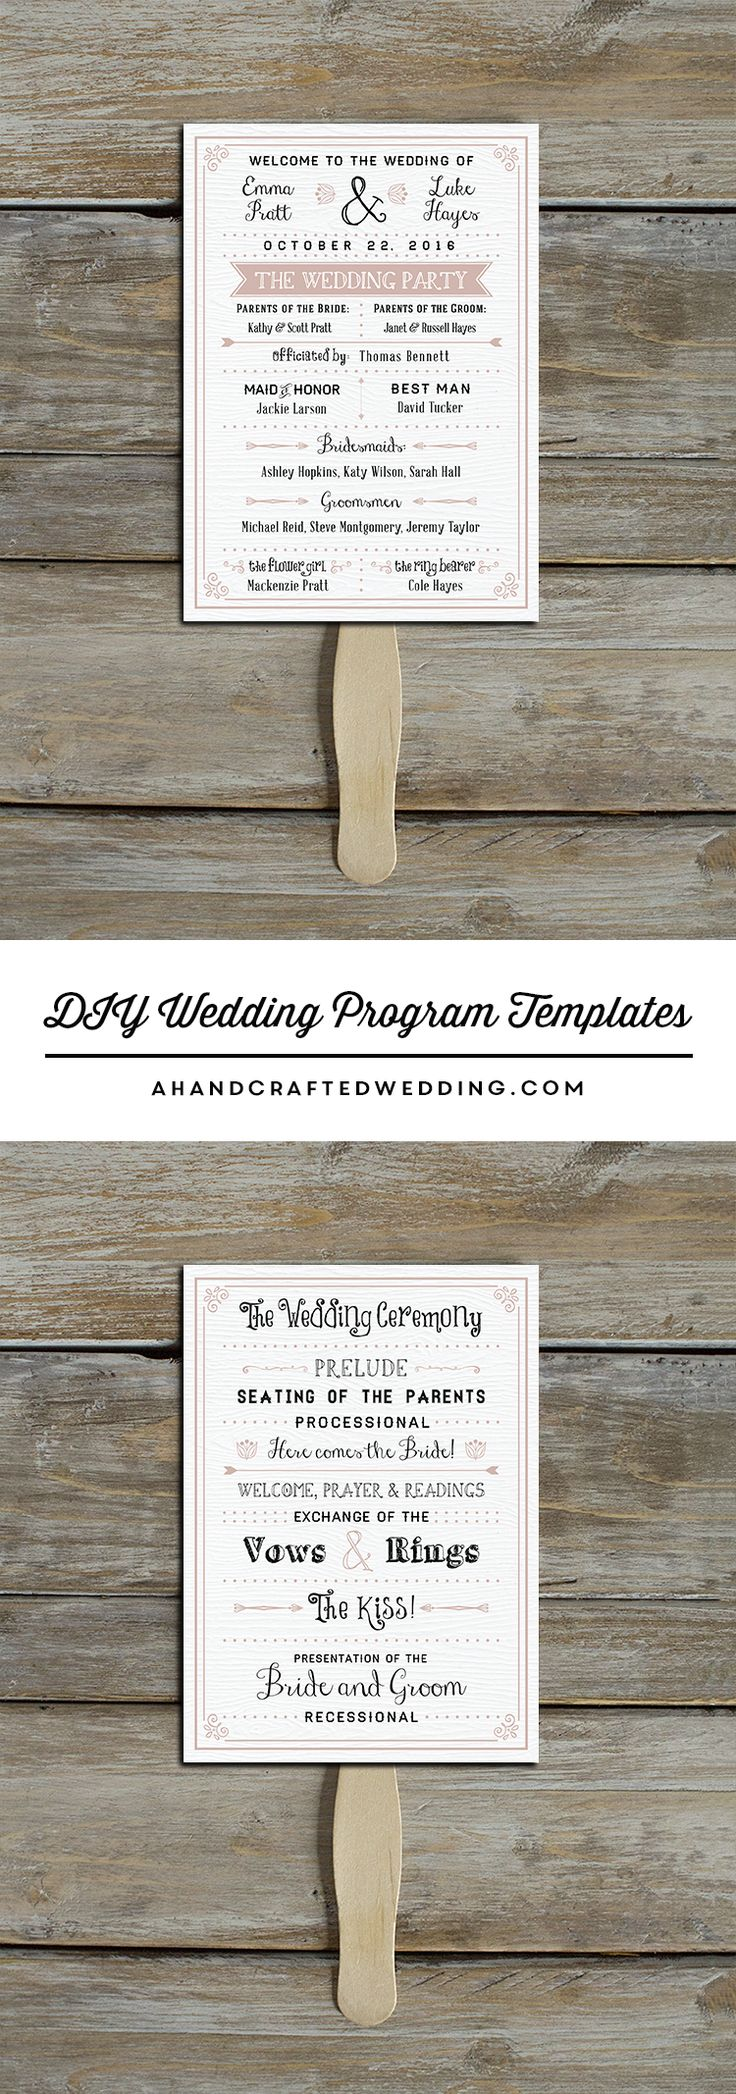 Download and customize this vintage inspired DIY Wedding